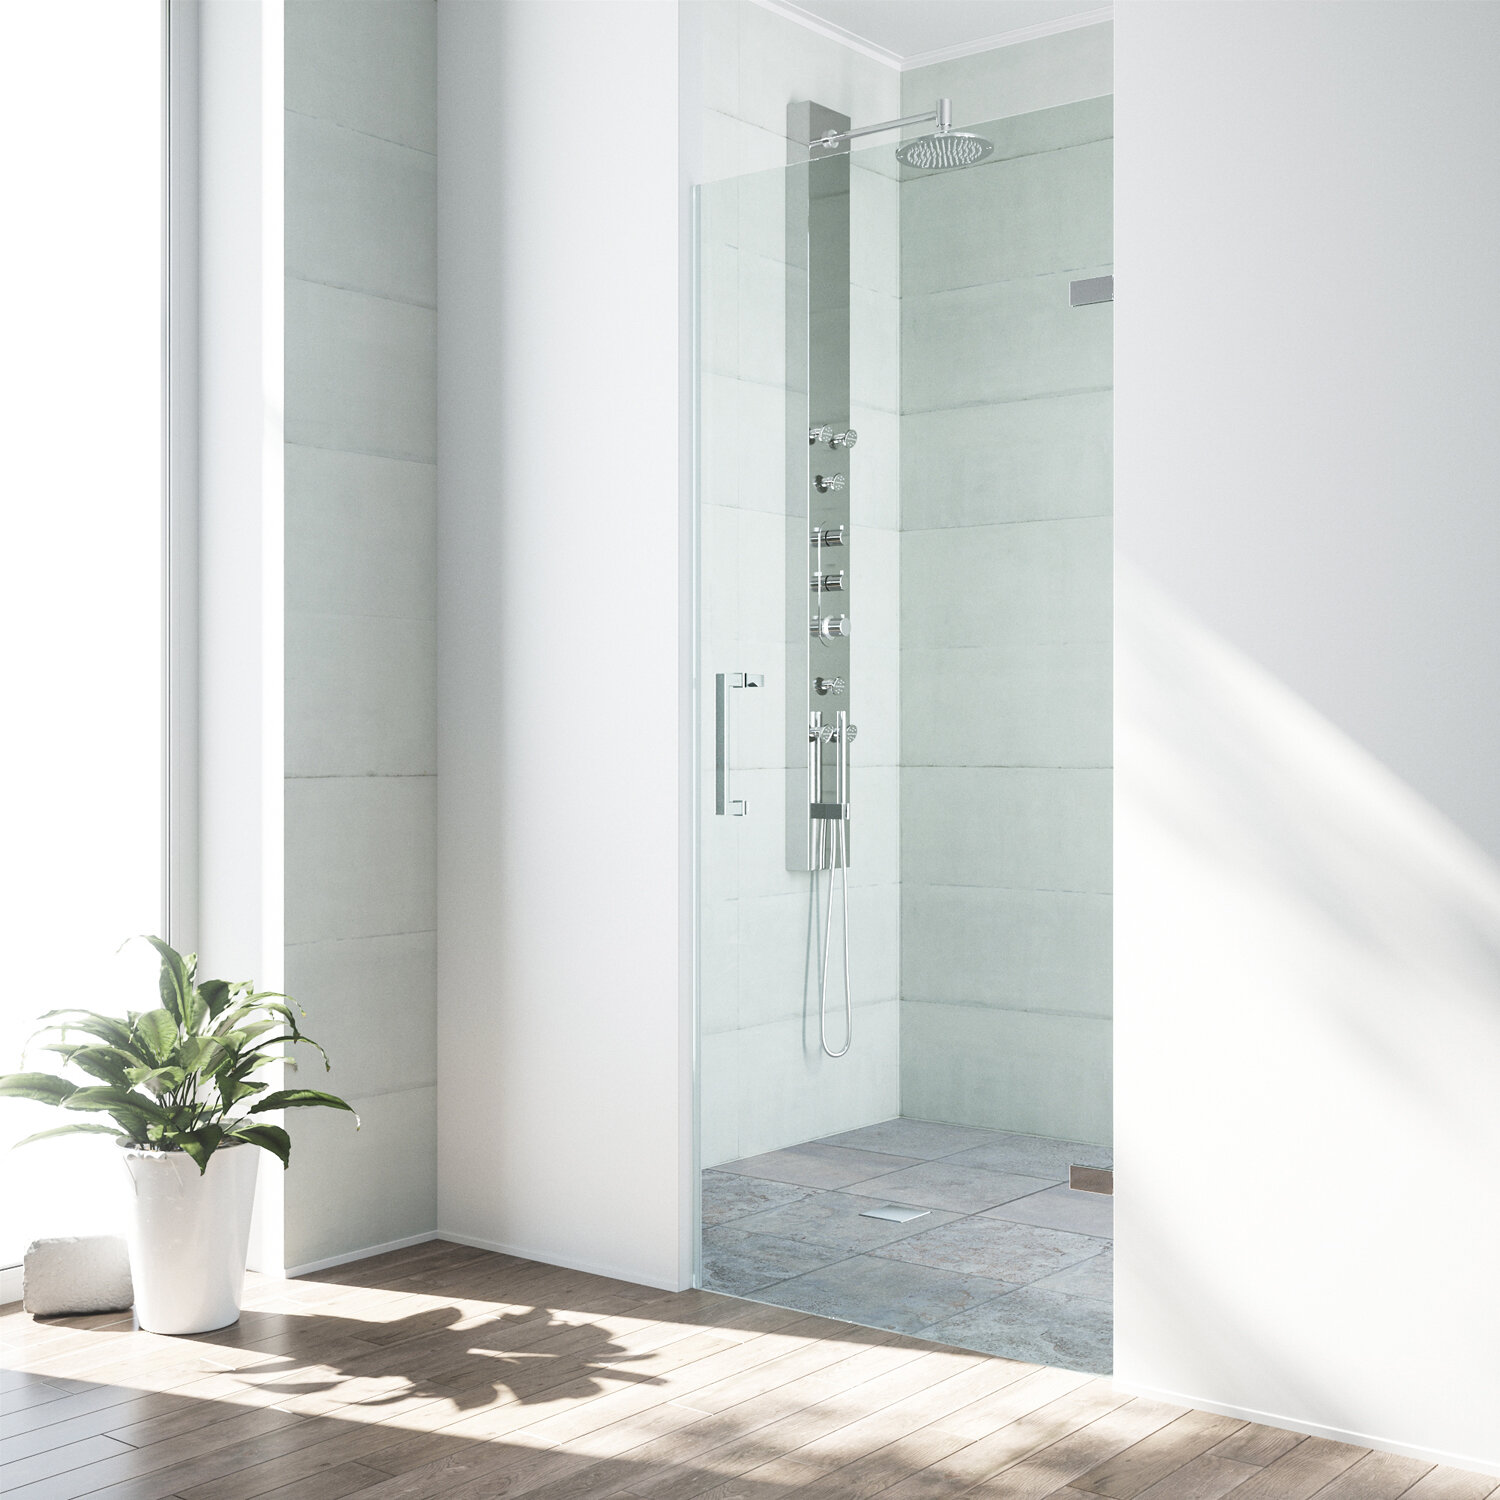 oil vigo gorgeous fresh furniture clear of door glass frameless thickness shower inch pirouette